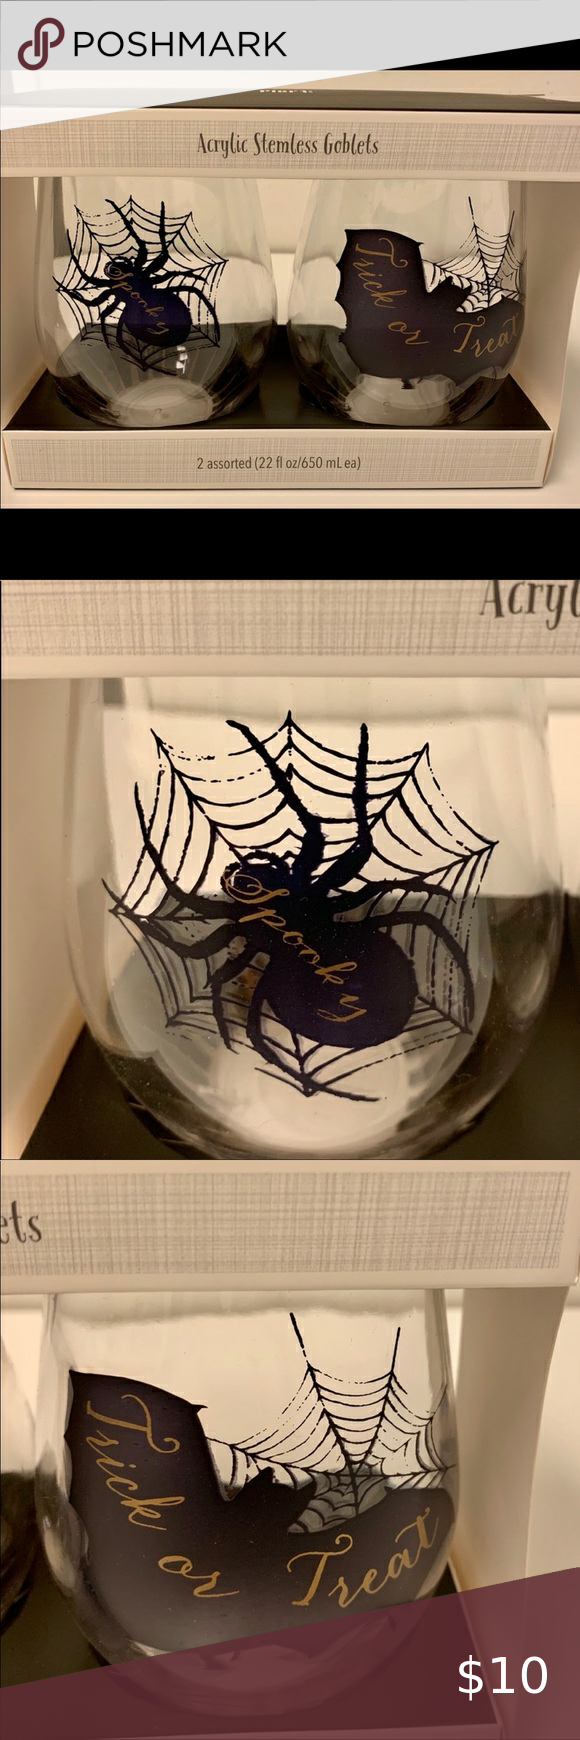 Peir One,Halloween 2020 🆕 Pier One Stemless Goblets 🕷 NIB in 2020 | Halloween stemless